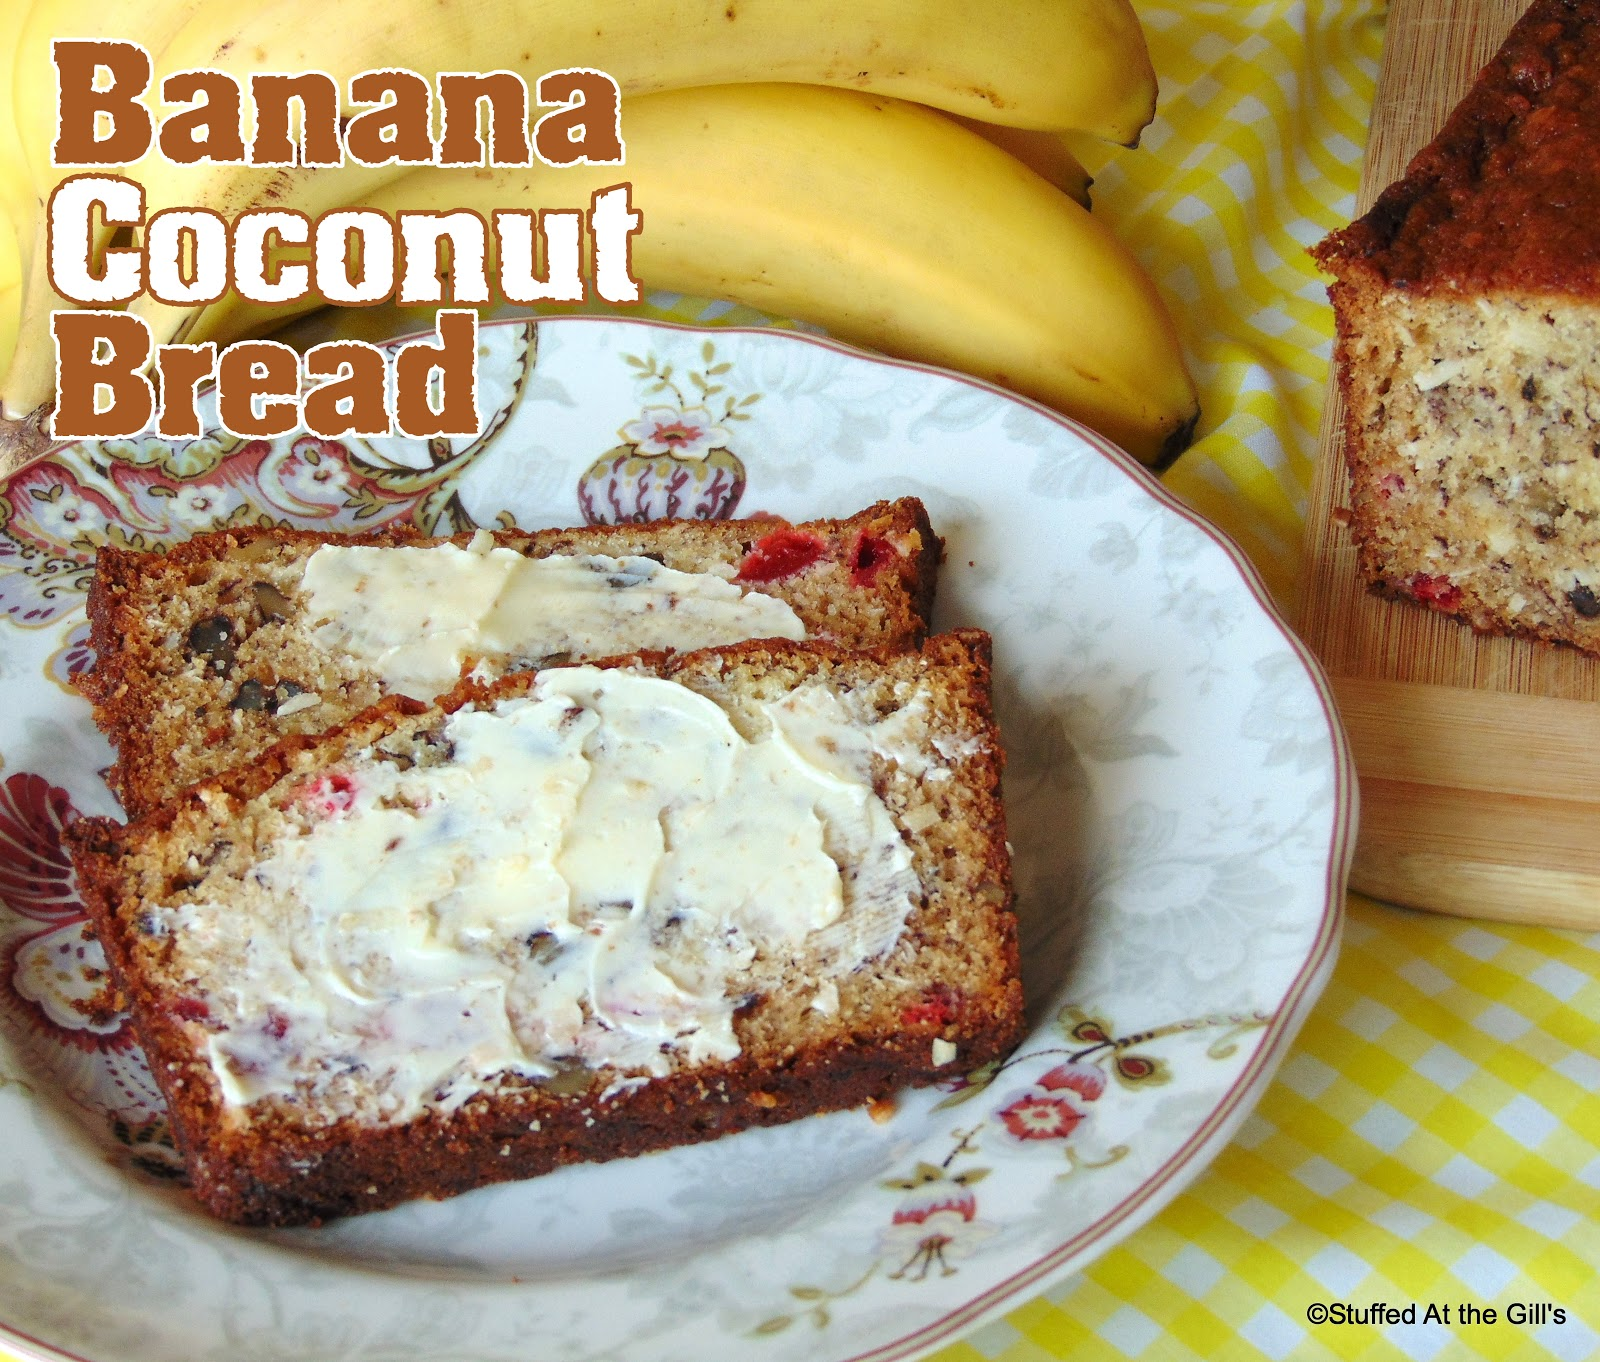 Banana Coconut Bread with a spread of butter.